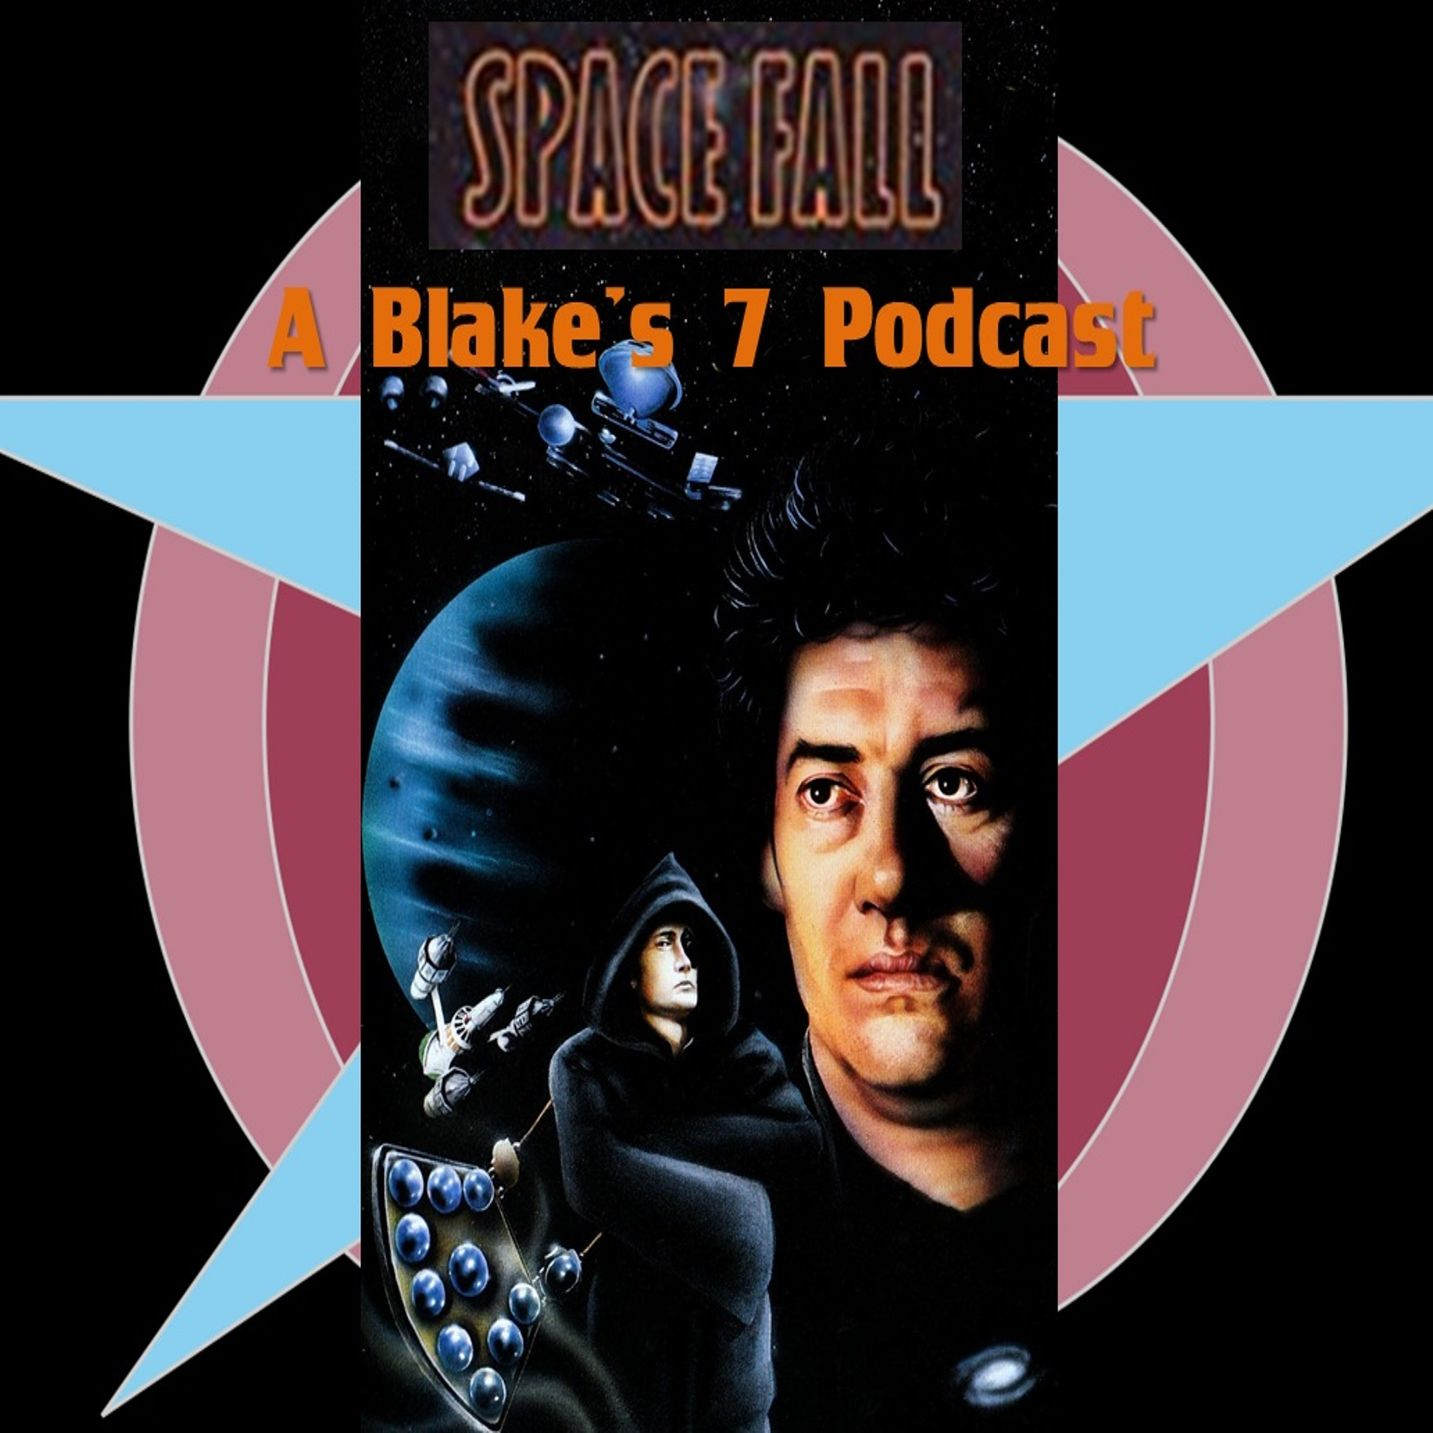 Space Fall: A Blake's 7 Podcast